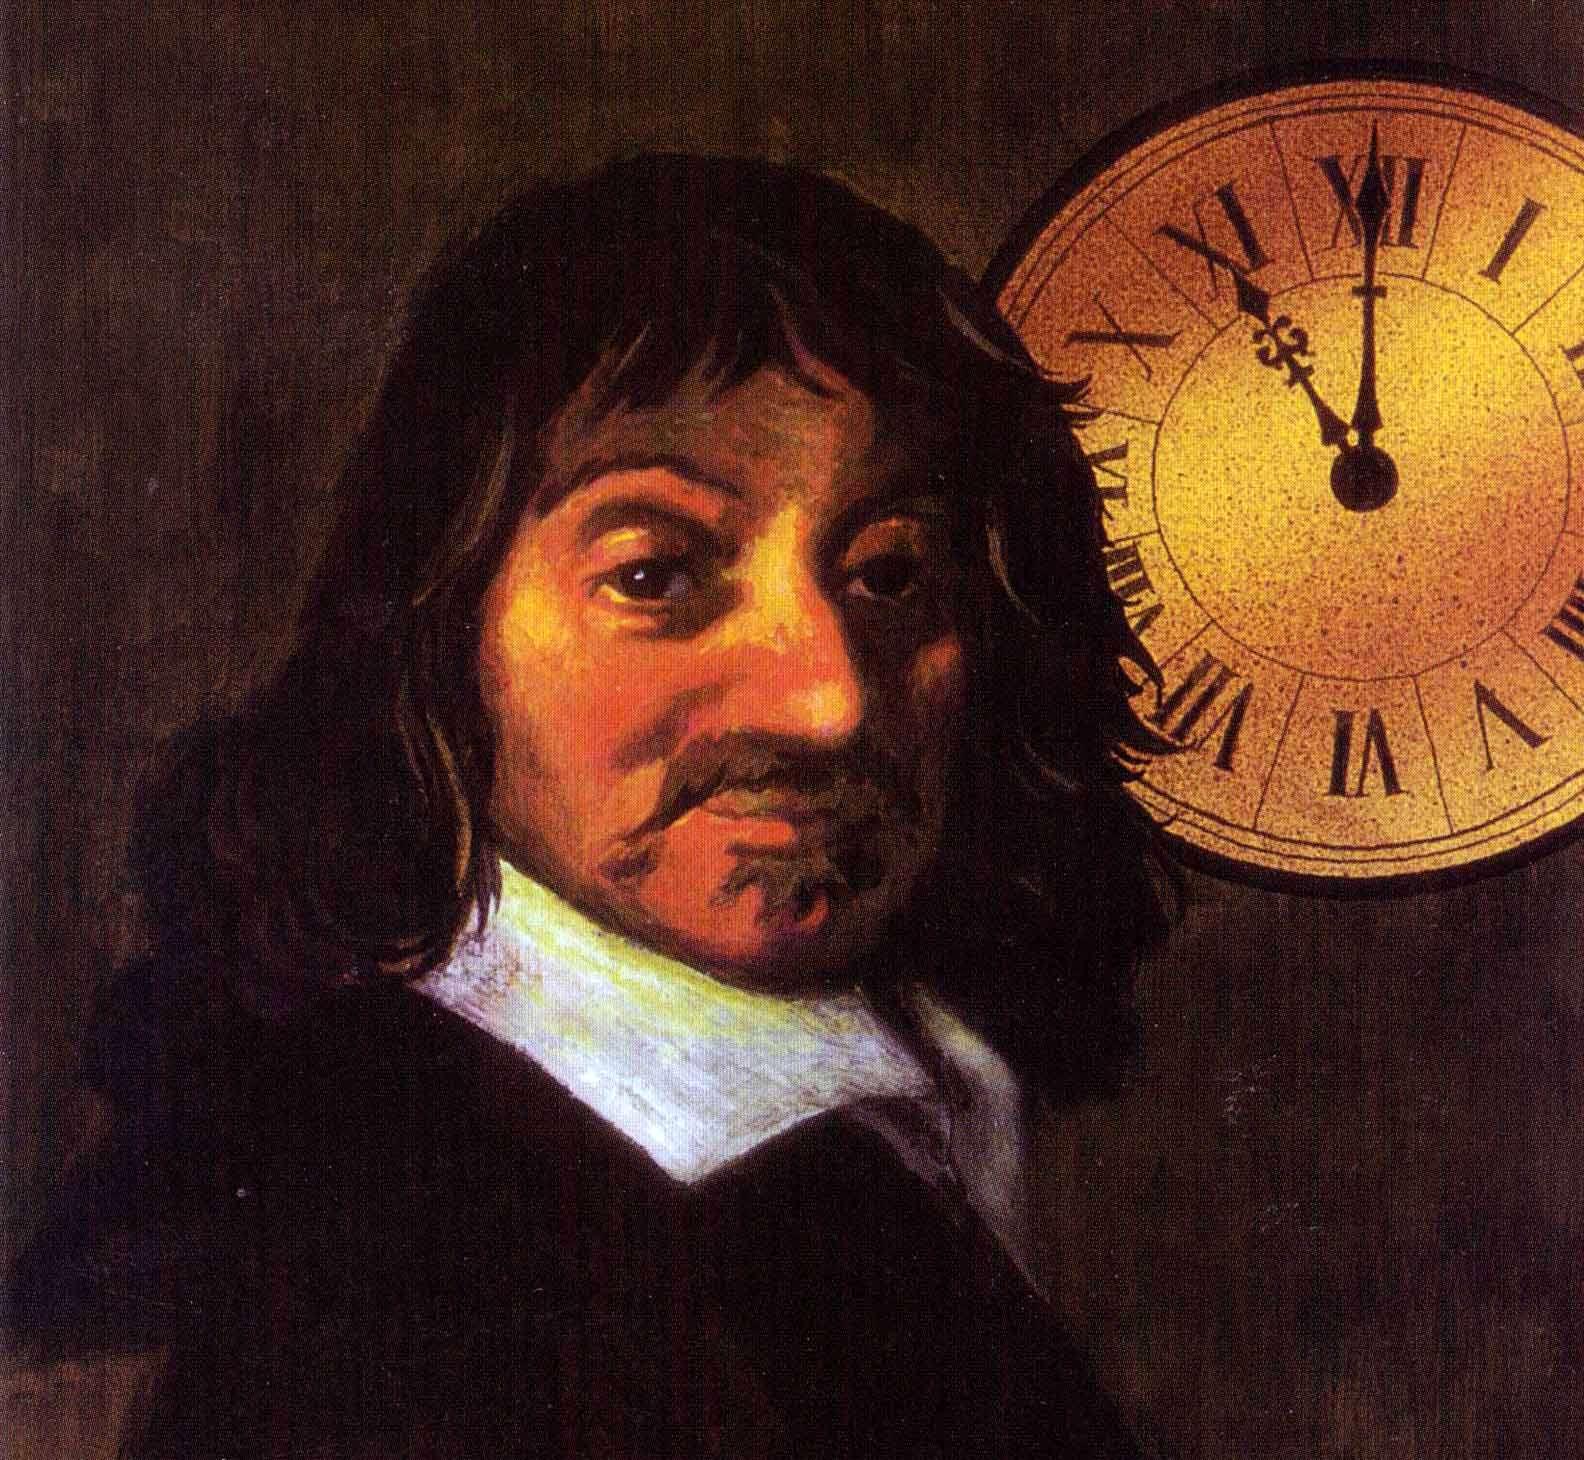 locke and descartes source of knowledge essay drugerreport742 descartes essays and papers